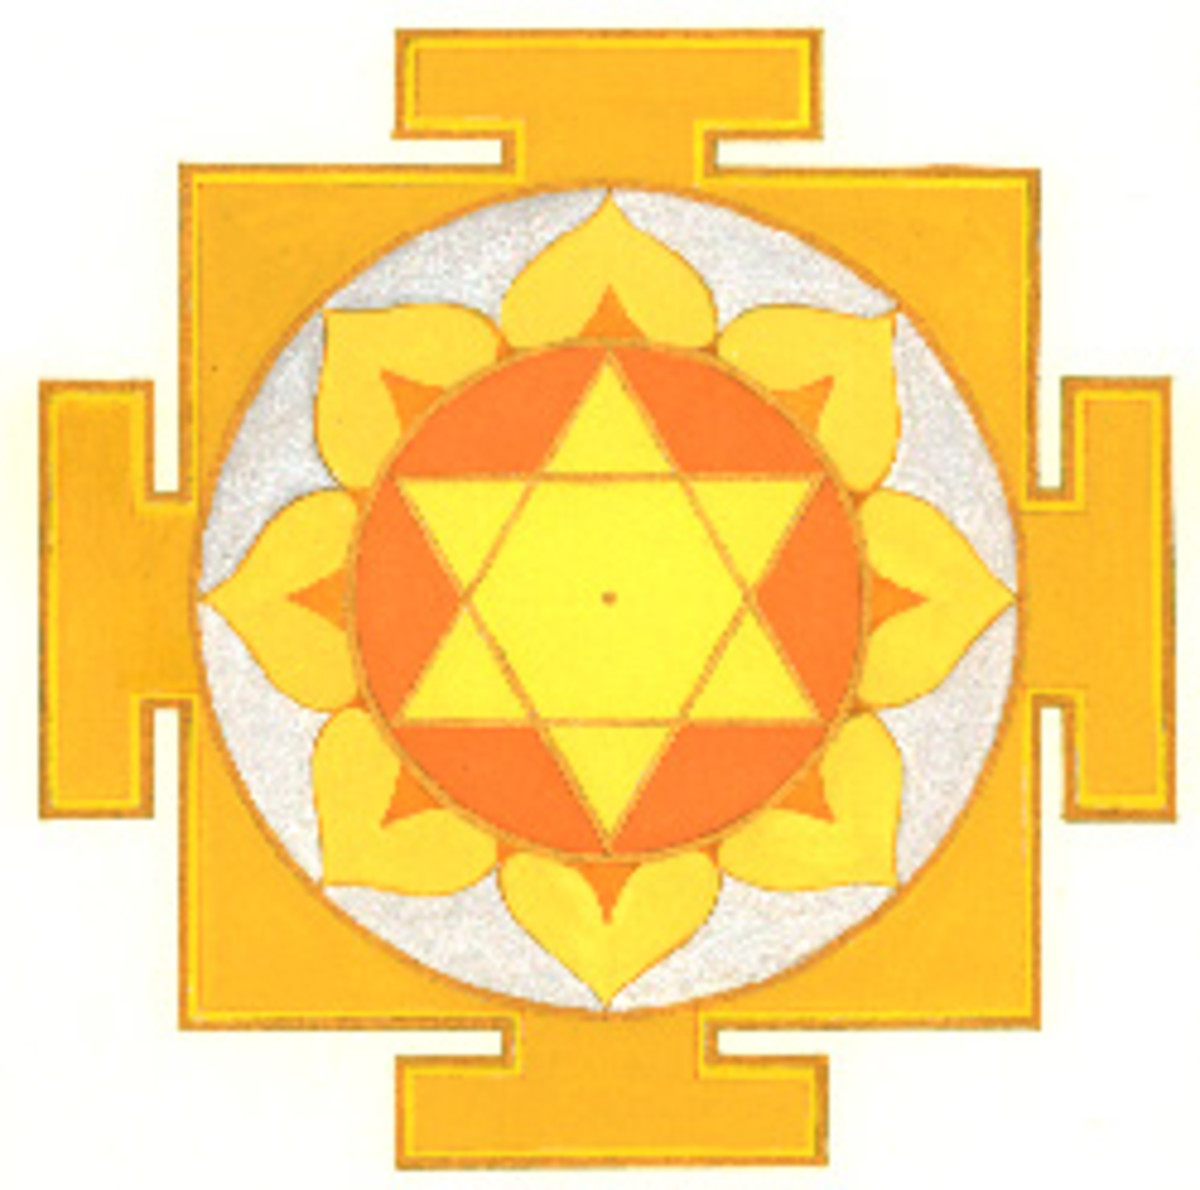 Painting of a Jupiter yantra